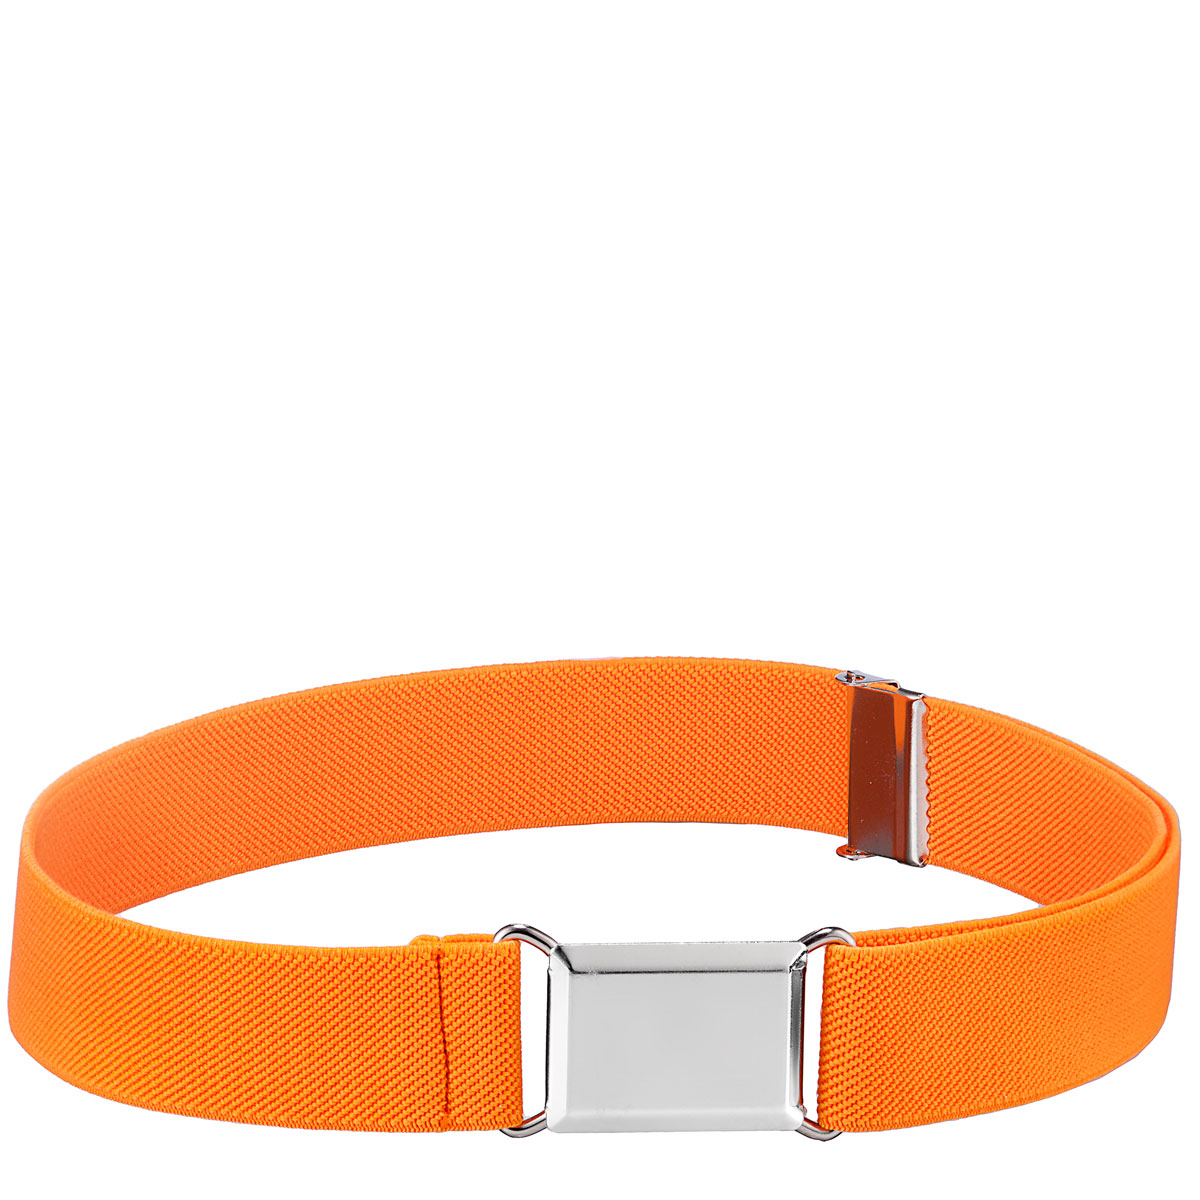 ed7cda1983c KneesNToes.net - Childrens Elastic Adjustable Stretch Belt With Buckle  Orange